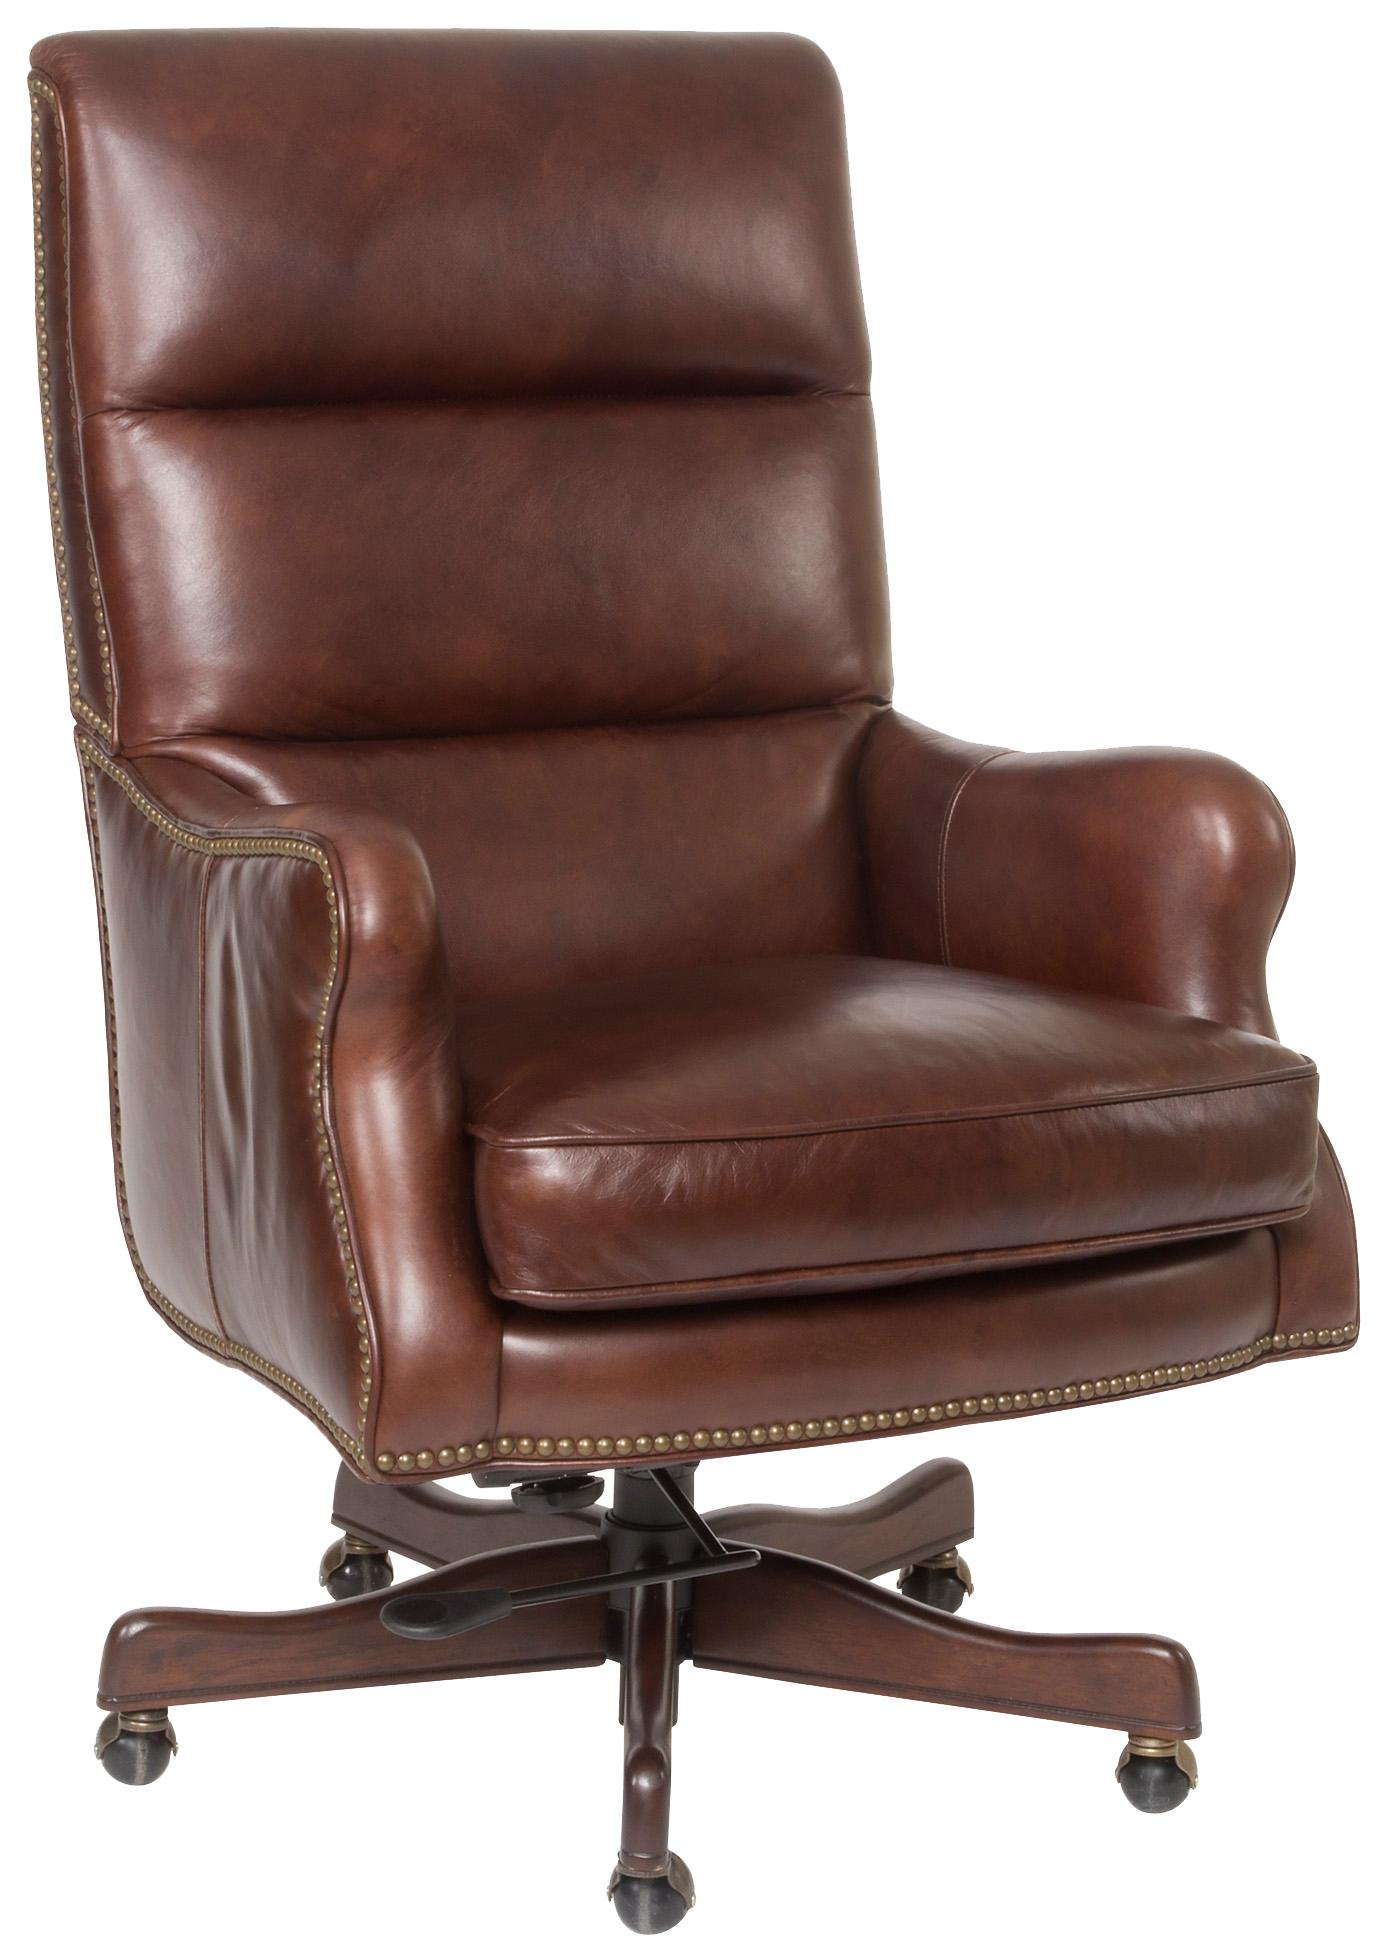 Executive Seating Classic Styled Leather Desk Chair by Hooker Furniture at Mueller Furniture